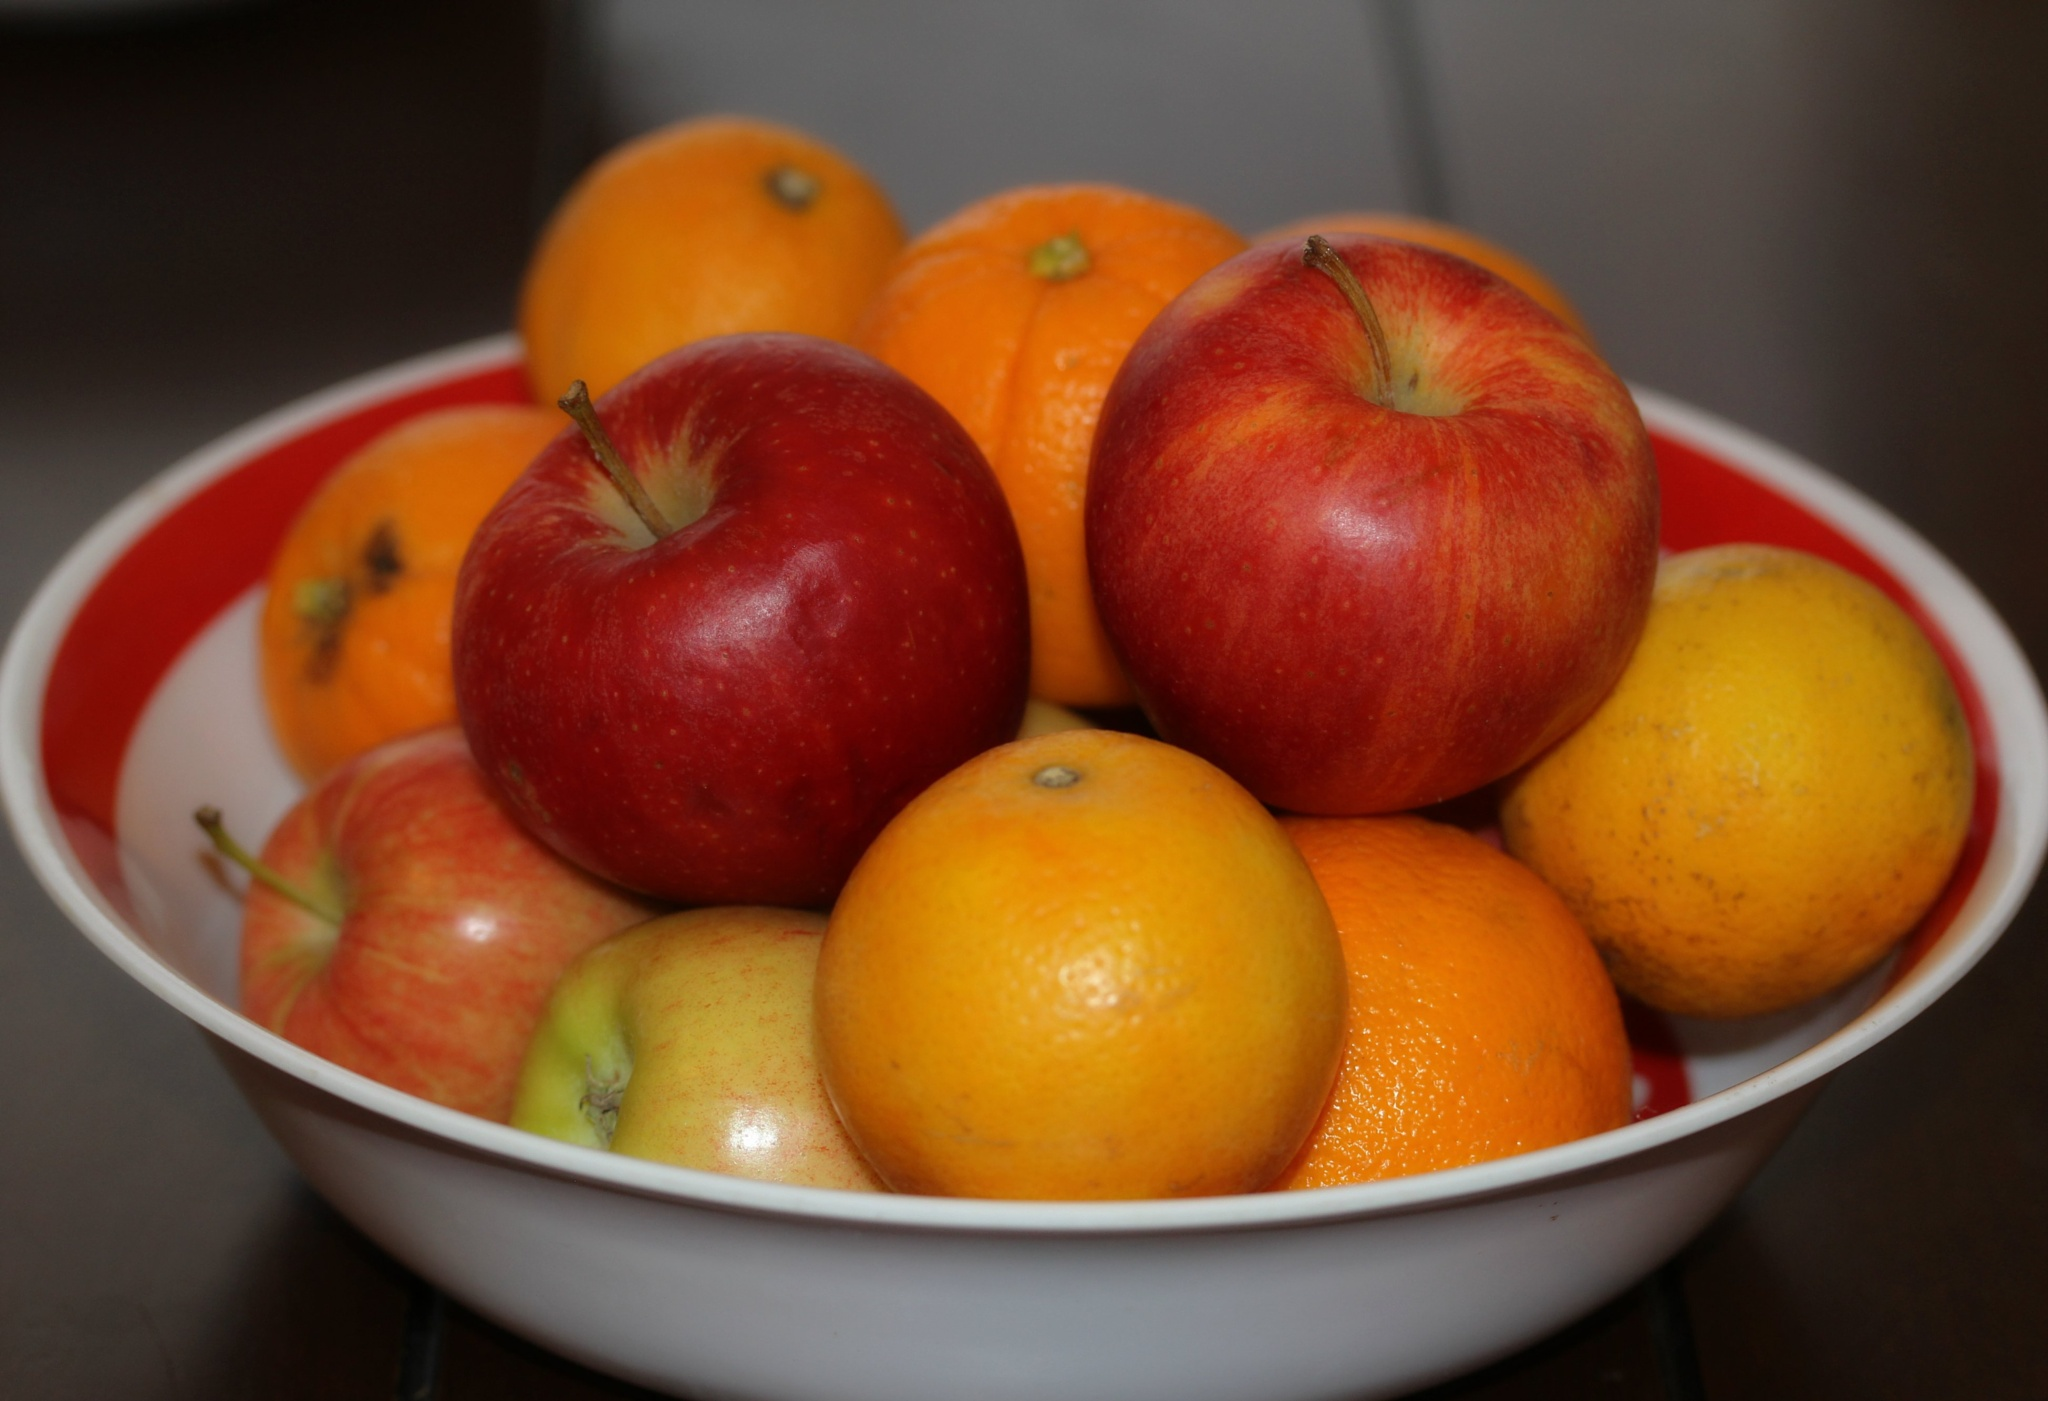 Comparing Apples to Oranges by rcpics